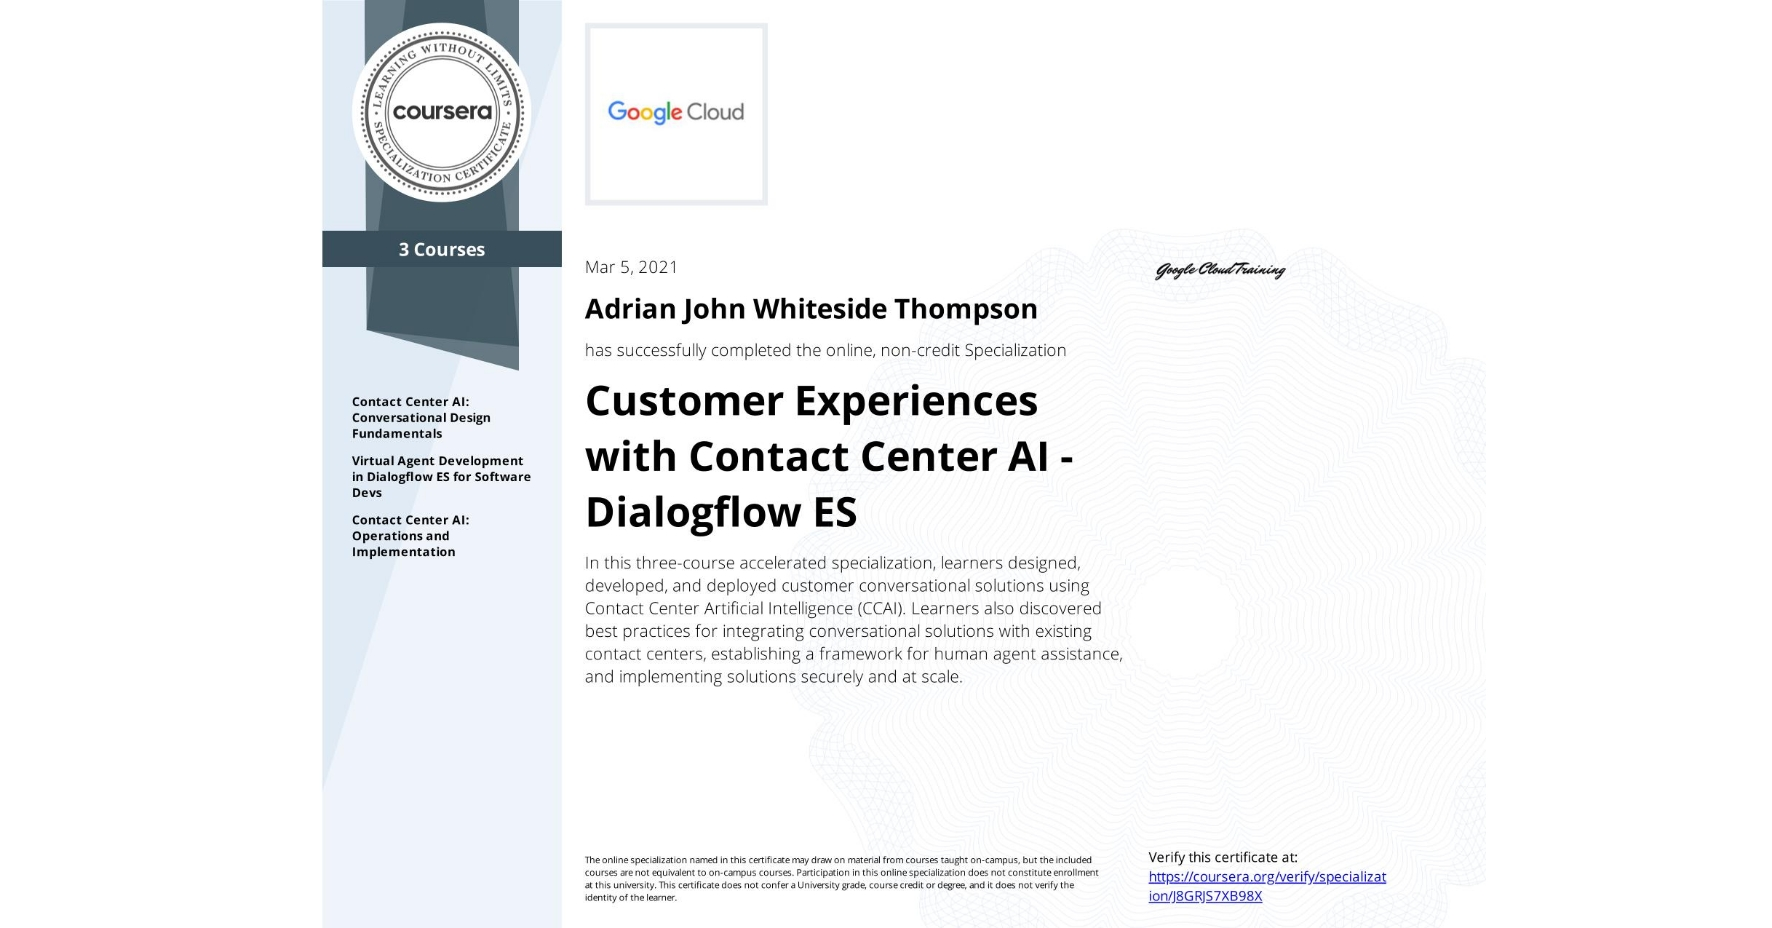 View certificate for Adrian John Whiteside Thompson, Customer Experiences with Contact Center AI, offered through Coursera. In this three-course accelerated specialization, learners designed, developed, and deployed customer conversational solutions using Contact Center Artificial Intelligence (CCAI). Learners also discovered best practices for integrating conversational solutions with existing contact centers, establishing a framework for human agent assistance, and implementing solutions securely and at scale.